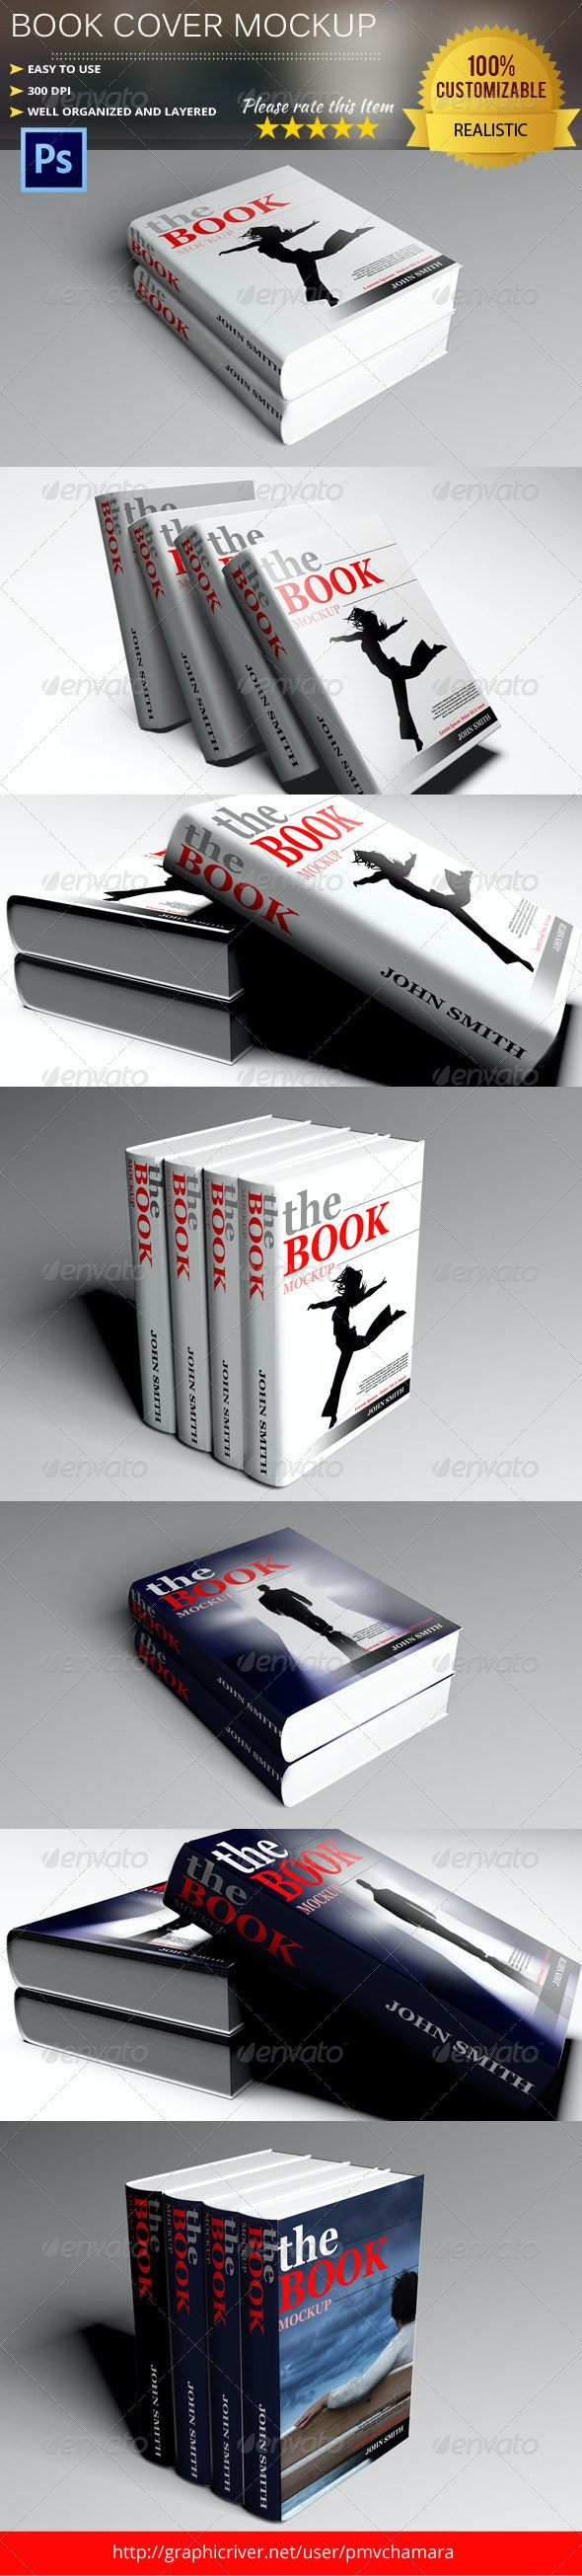 Photorealistic Book Cover Mock-Up - Books Print